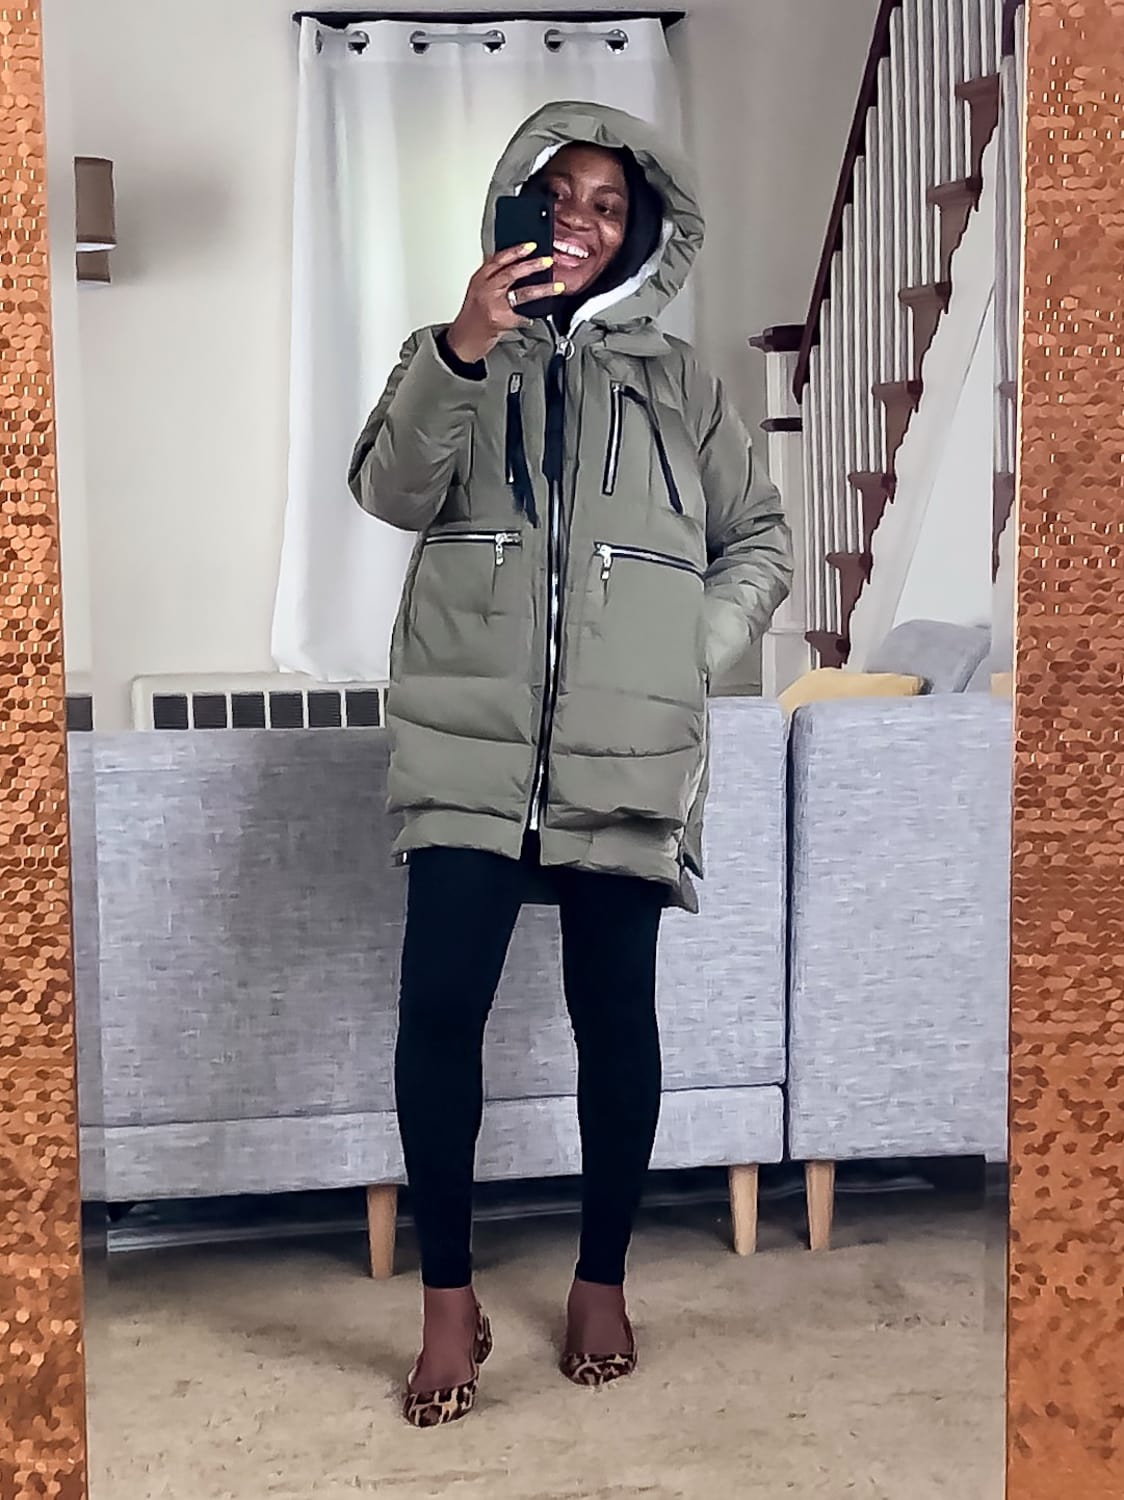 The Orolay Women's Thickened Down Jacket (under $150), a certified parka 90% white duck down with only 10% feathers is Amazon's most wished jacket with an impressive 4-plus star review from over 7,000 customers.